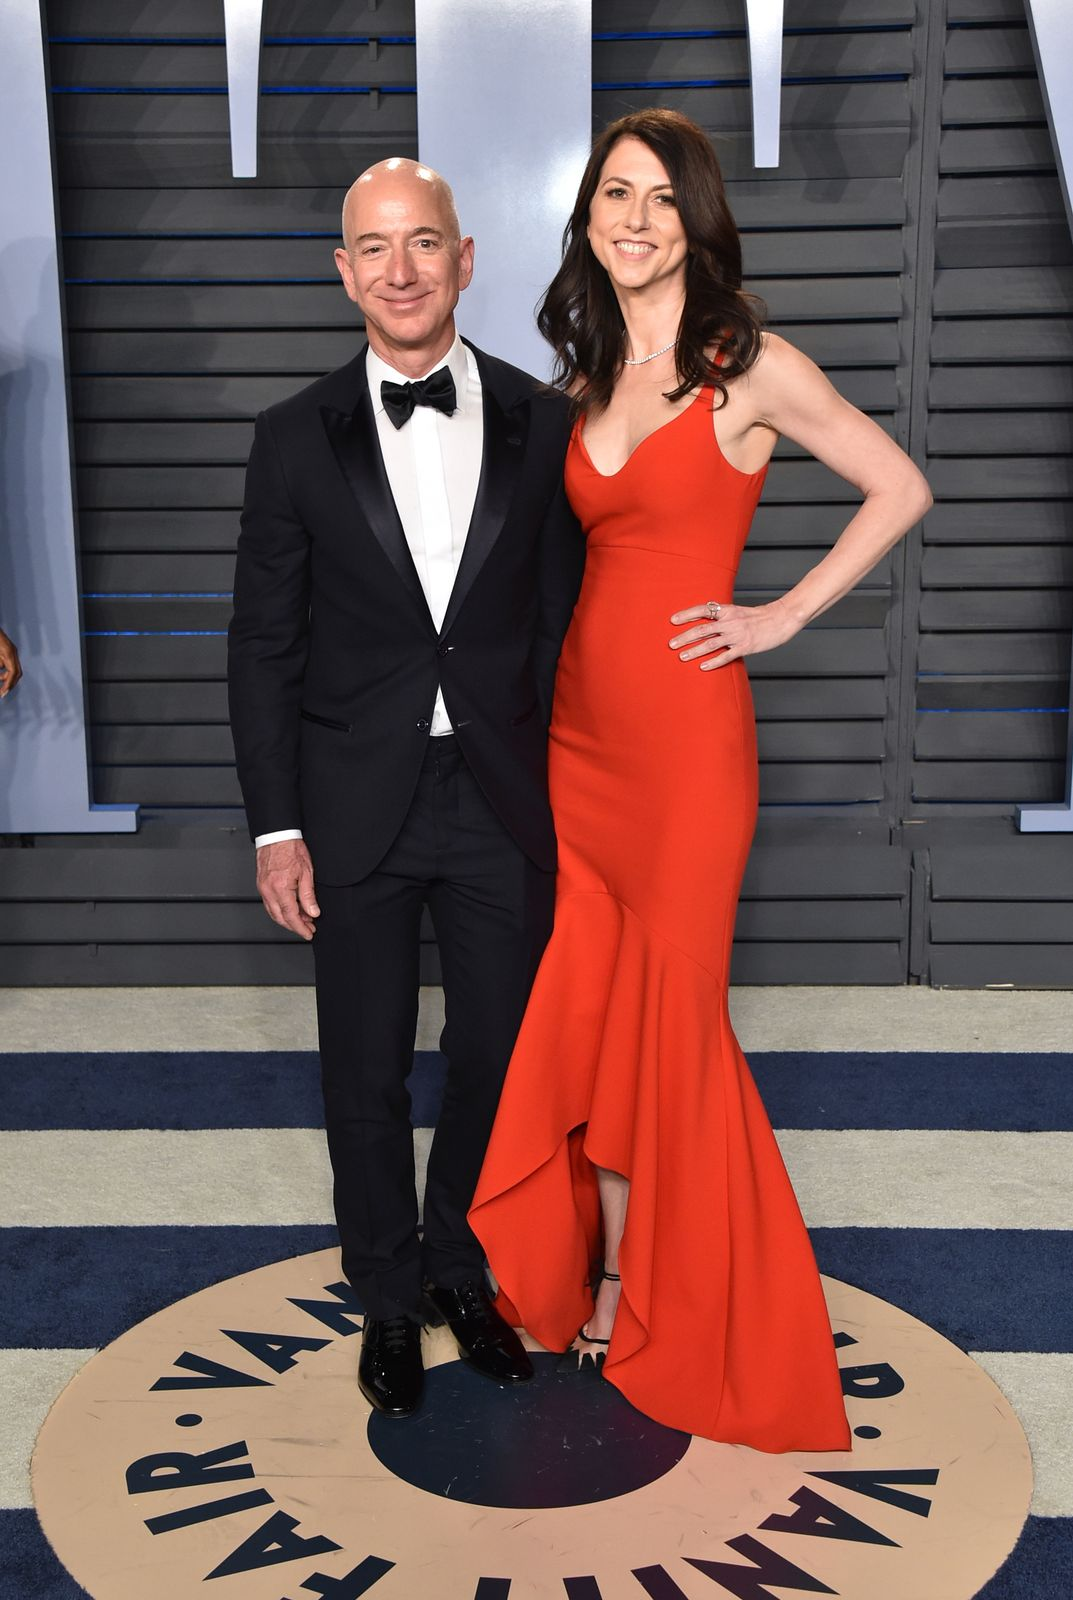 Jeff Bezos and his ex-wife MacKenzie Scott attend the 2018 Vanity Fair Oscar Party hosted by Radhika Jones at Wallis Annenberg Center for the Performing Arts on March 4, 2018 in Beverly Hills, California. | Photo: Getty Images